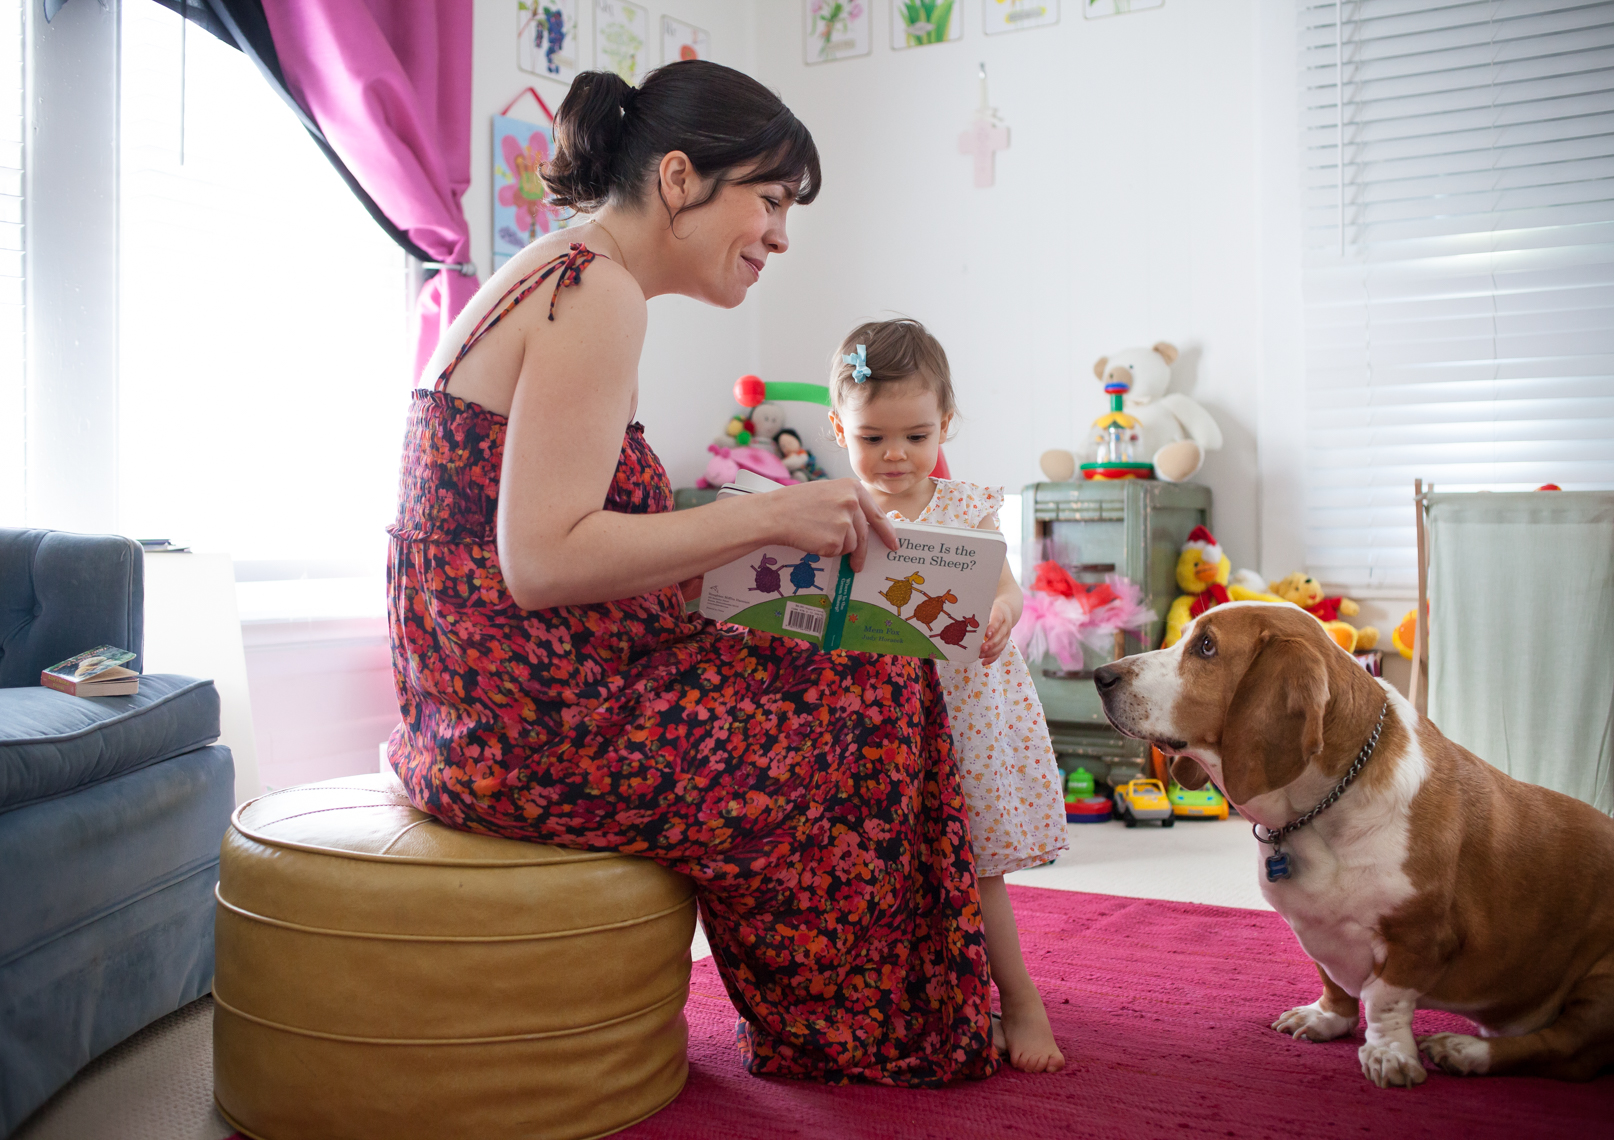 Young mother reads to her daughter, basset hound, family, home, lifestyle, photographer